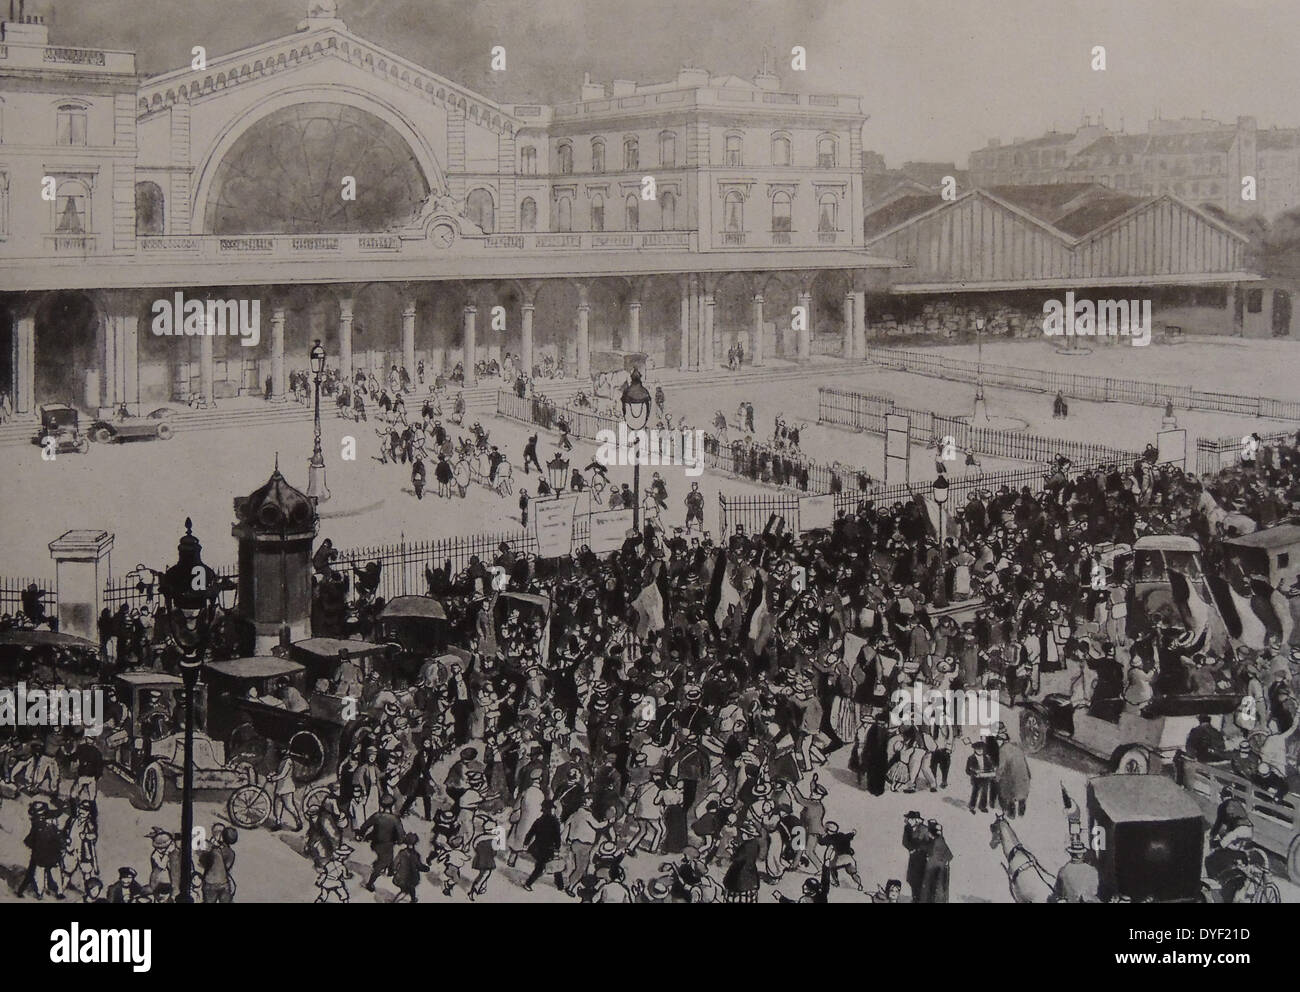 Crowds waving off French recruits and conscripts. - Stock Image